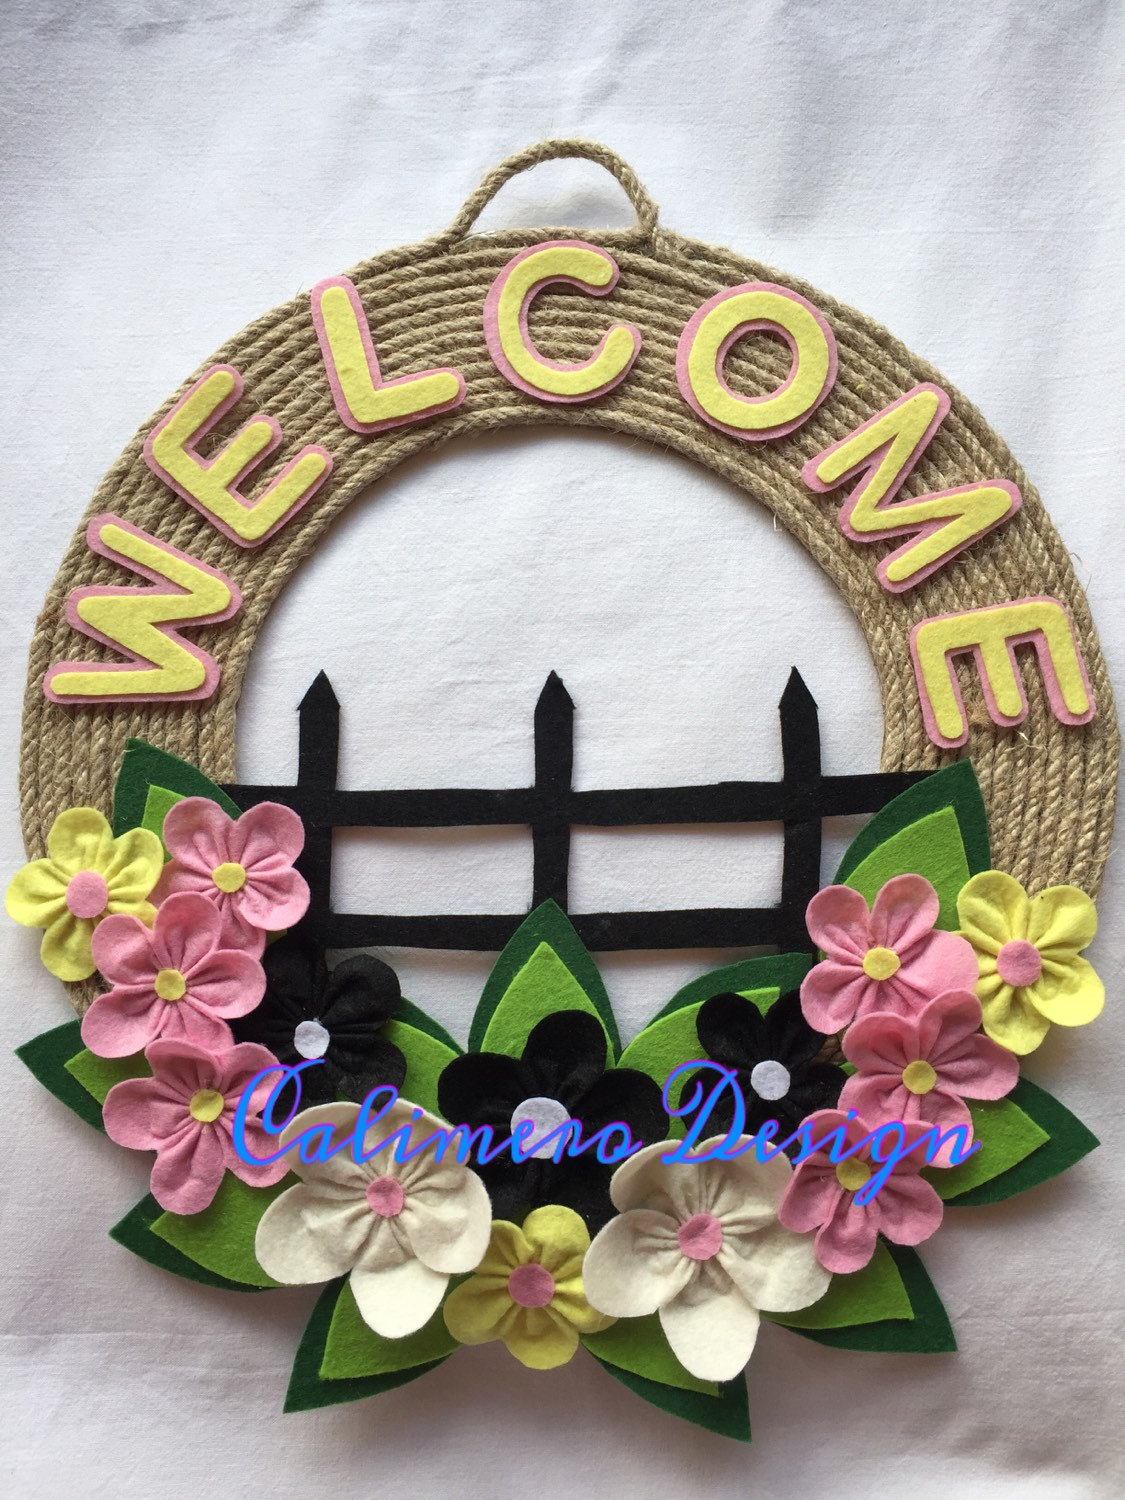 whimsy handmade summer wreath designs for a fun welcome to your home 18 whimsy handmade summer wreath designs for a fun welcome to your home